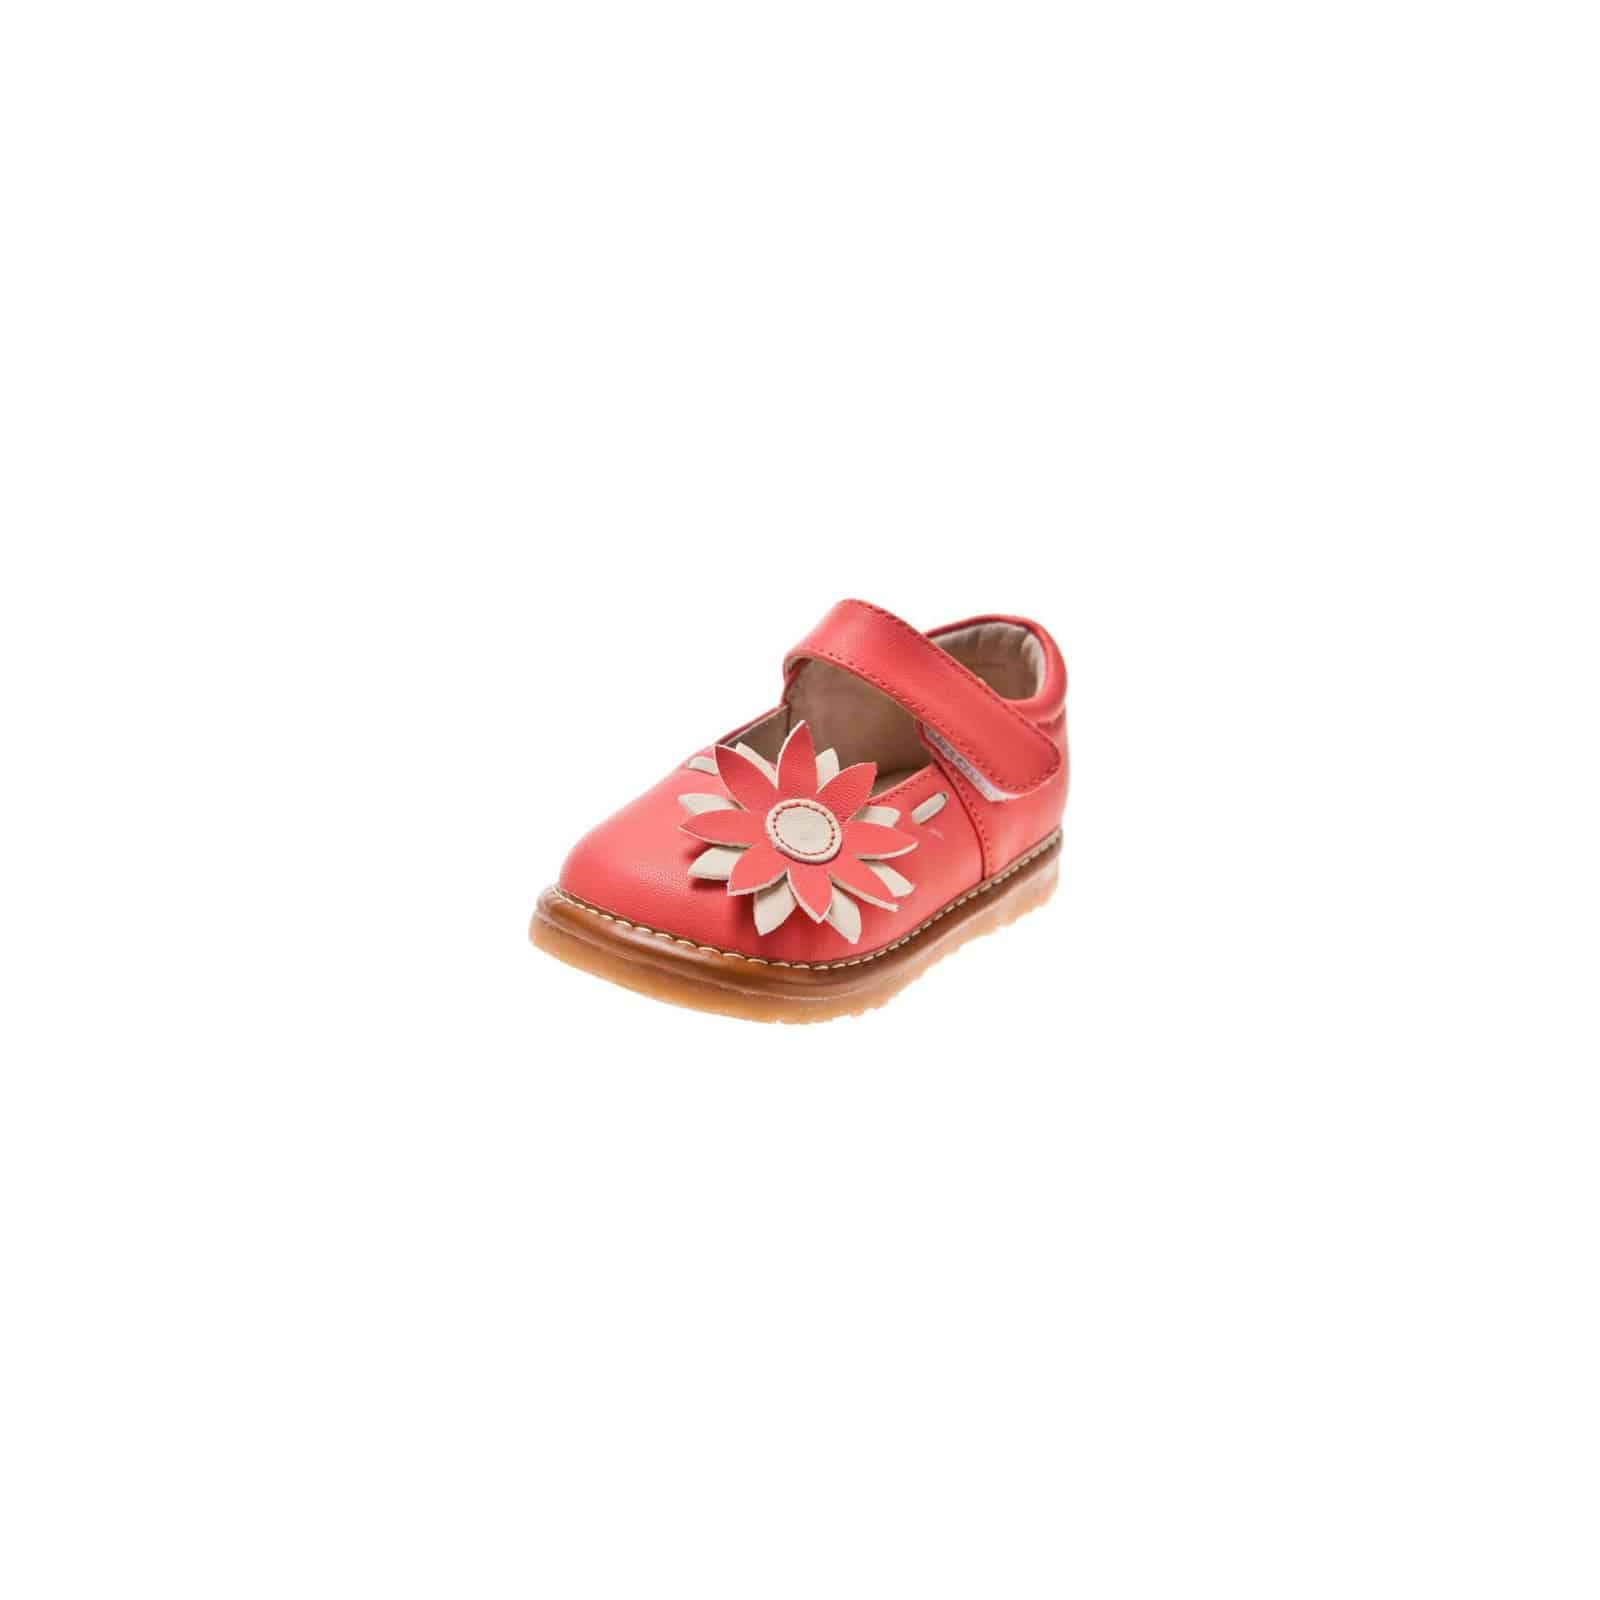 Squeaky Leather Toddler Girls Shoes | Pink babies with marguerite